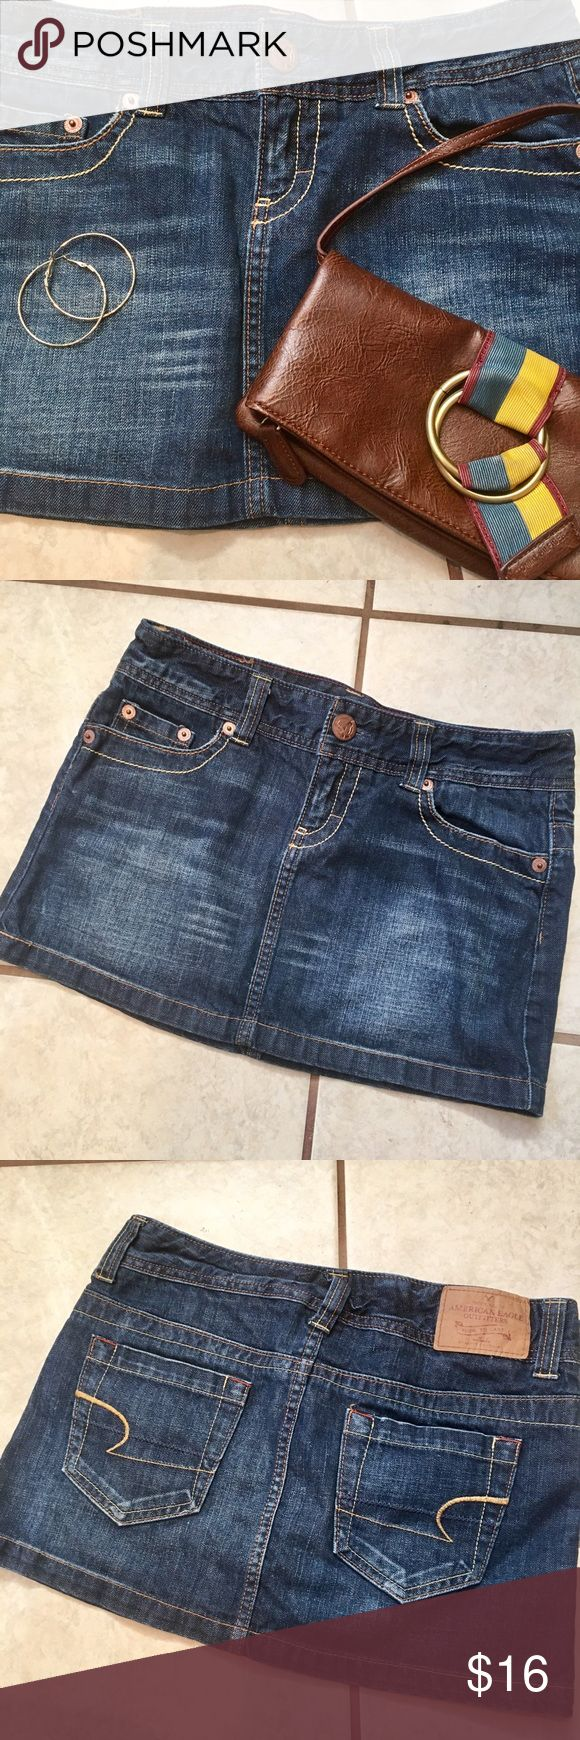 ⭐️NEW LISTING!⭐️ American Eagle jean mini skirt ⭐️🌸NEW LISTING!🌸⭐️ American Eagle jean mini skirt, size 4. Length measured from side seam to bottom of the hem is 12 1/4 inches. Accessories pictured available in separate listings. Be sure to bundle for great savings! American Eagle Outfitters Skirts Mini